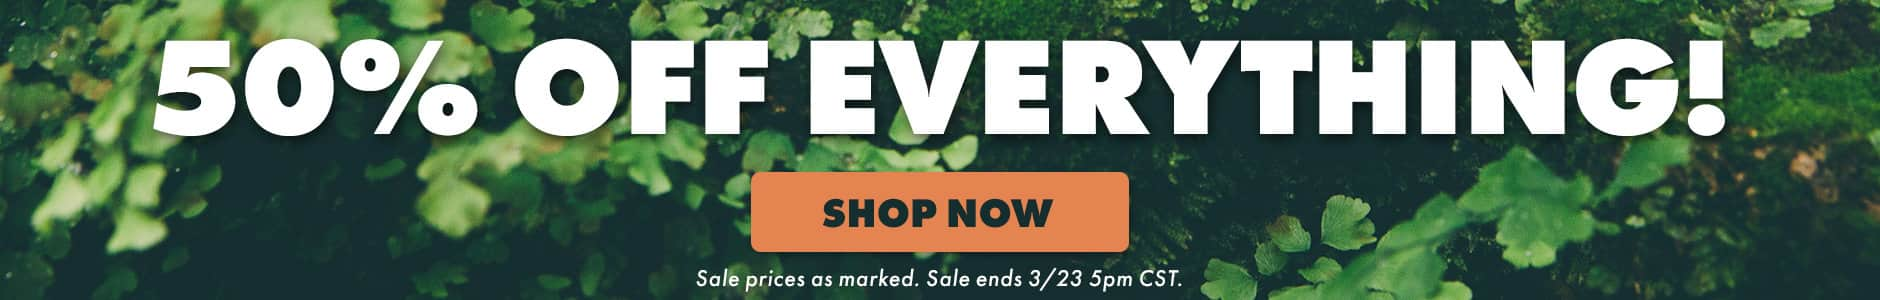 50% off everything! Shop now. Sale prices as marked. Sale ends 3/23 5PM CST.